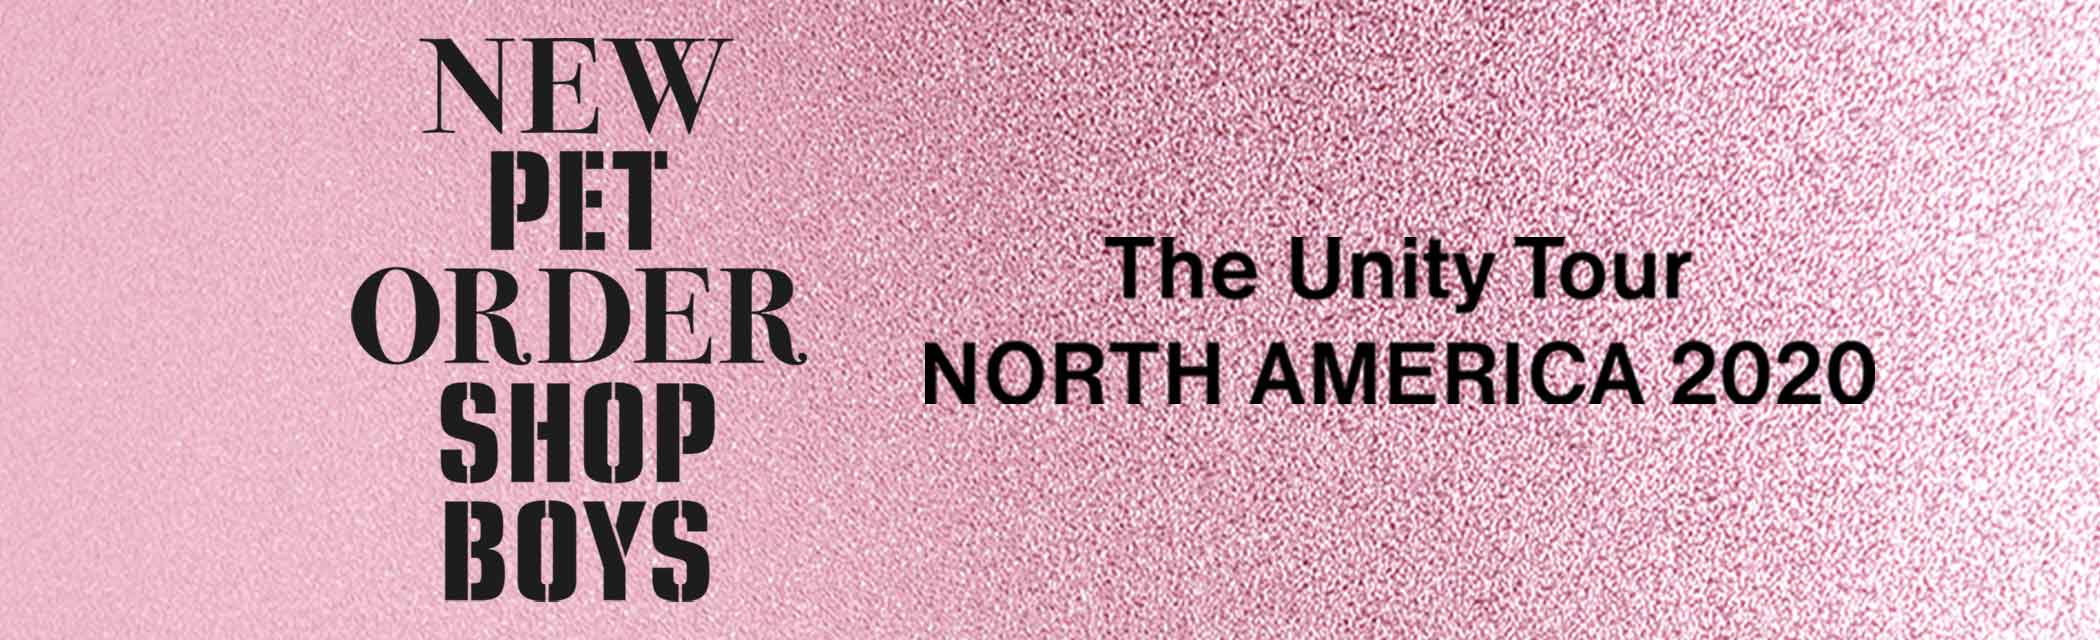 The Unity Tour North America 2020